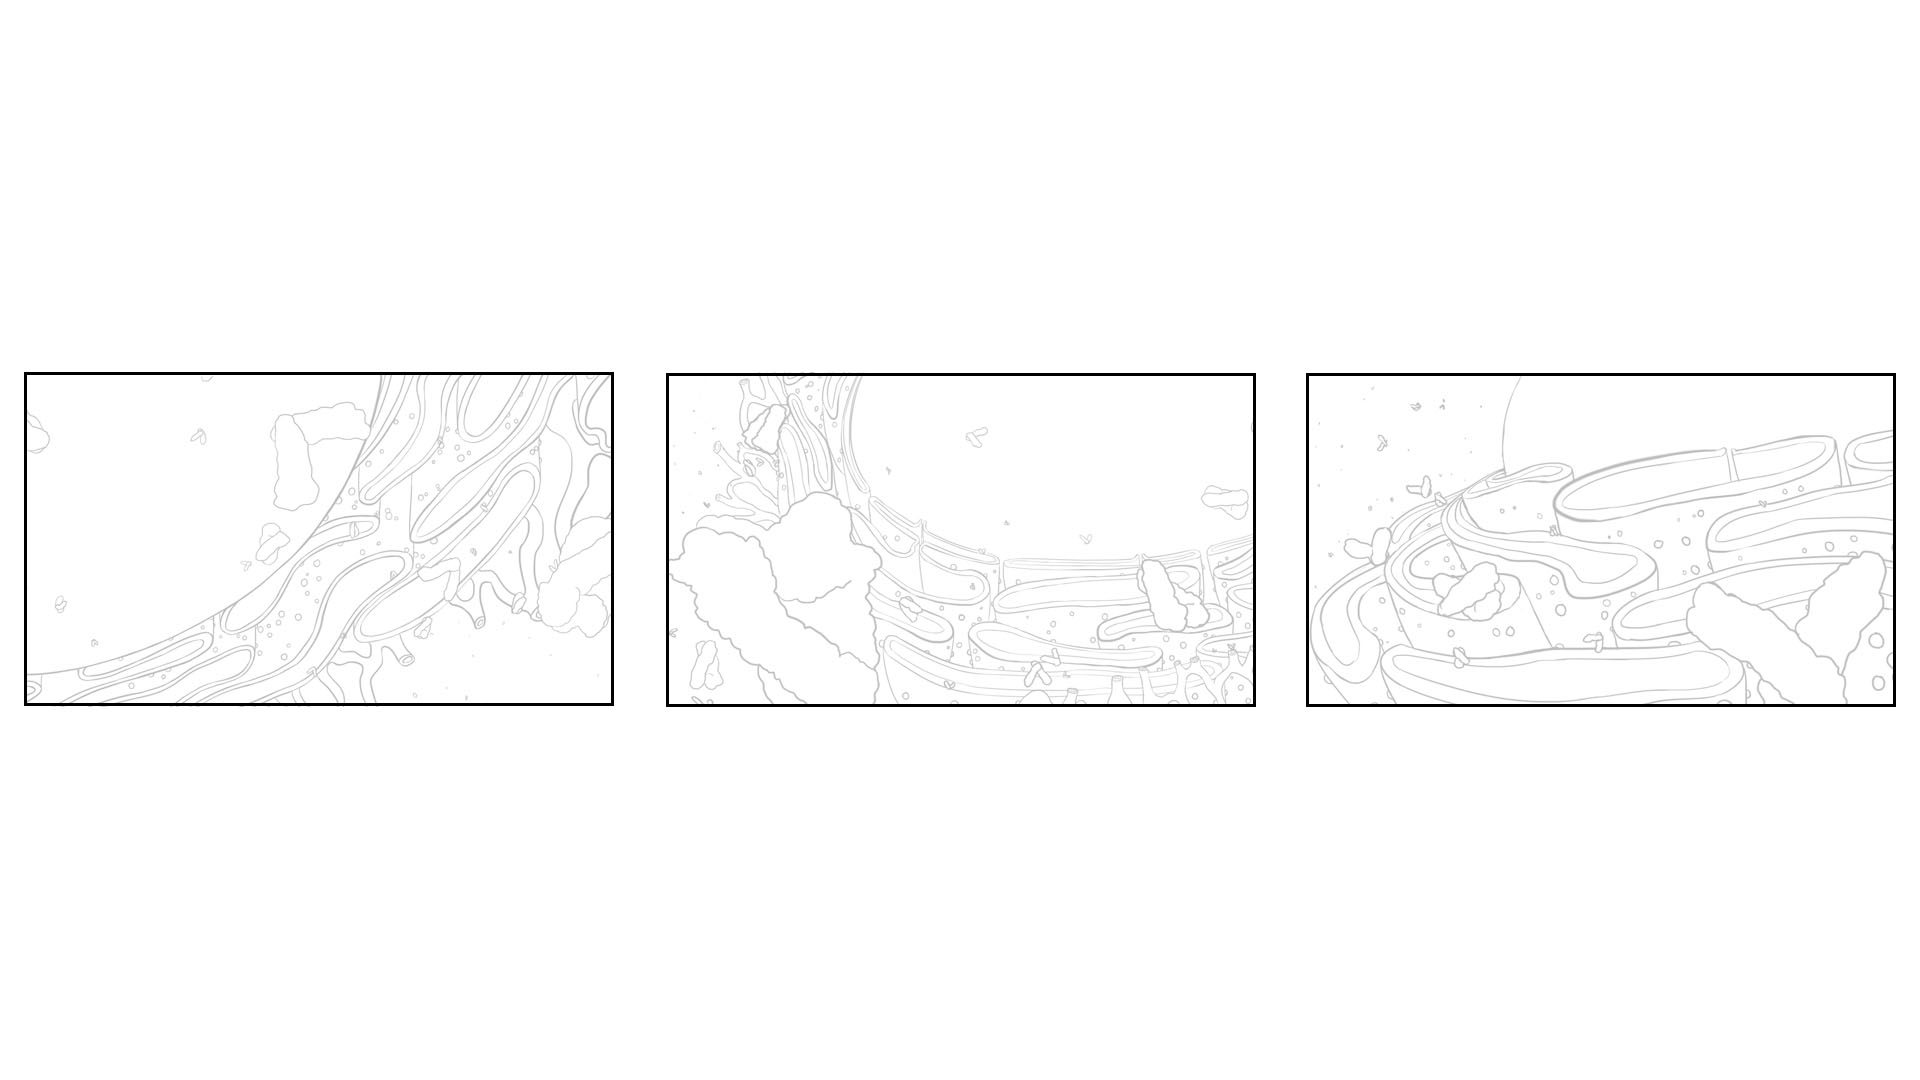 layout thumbnails draftedduring brainstorming stages of this project